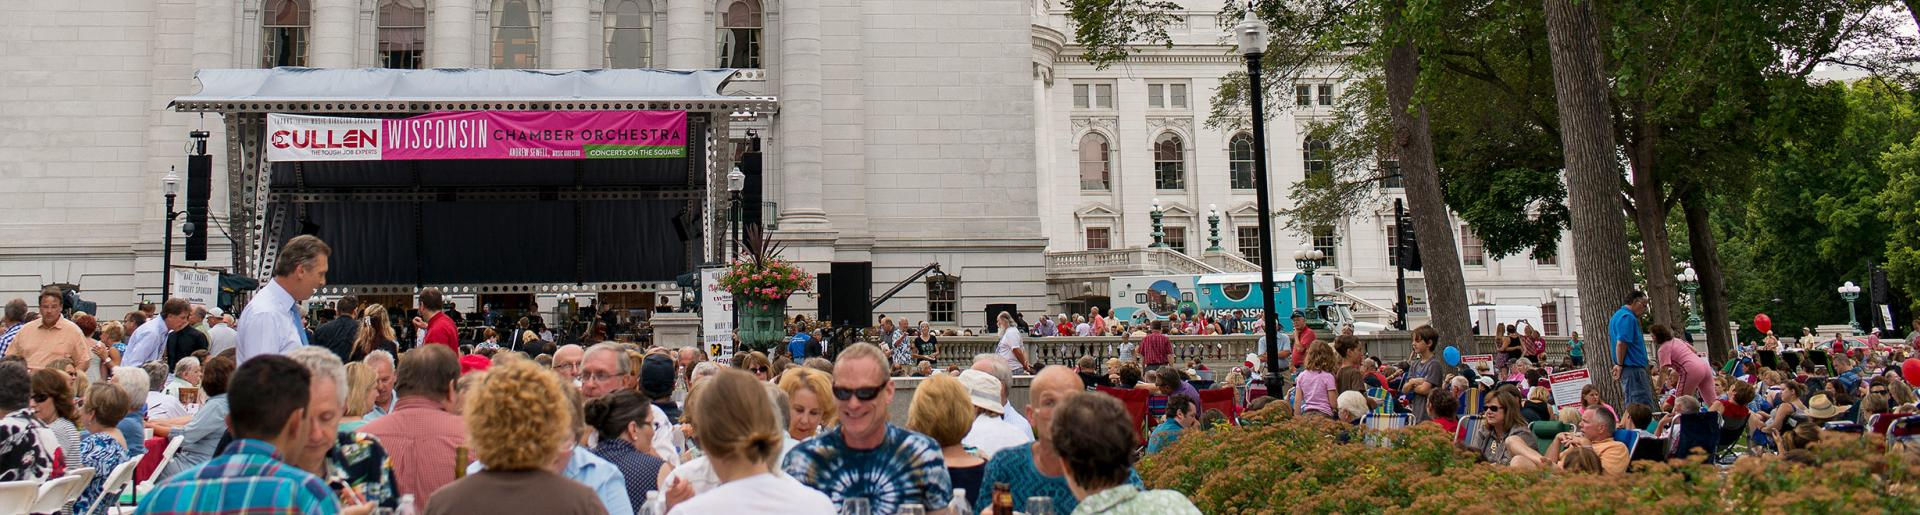 Concerts on the Square